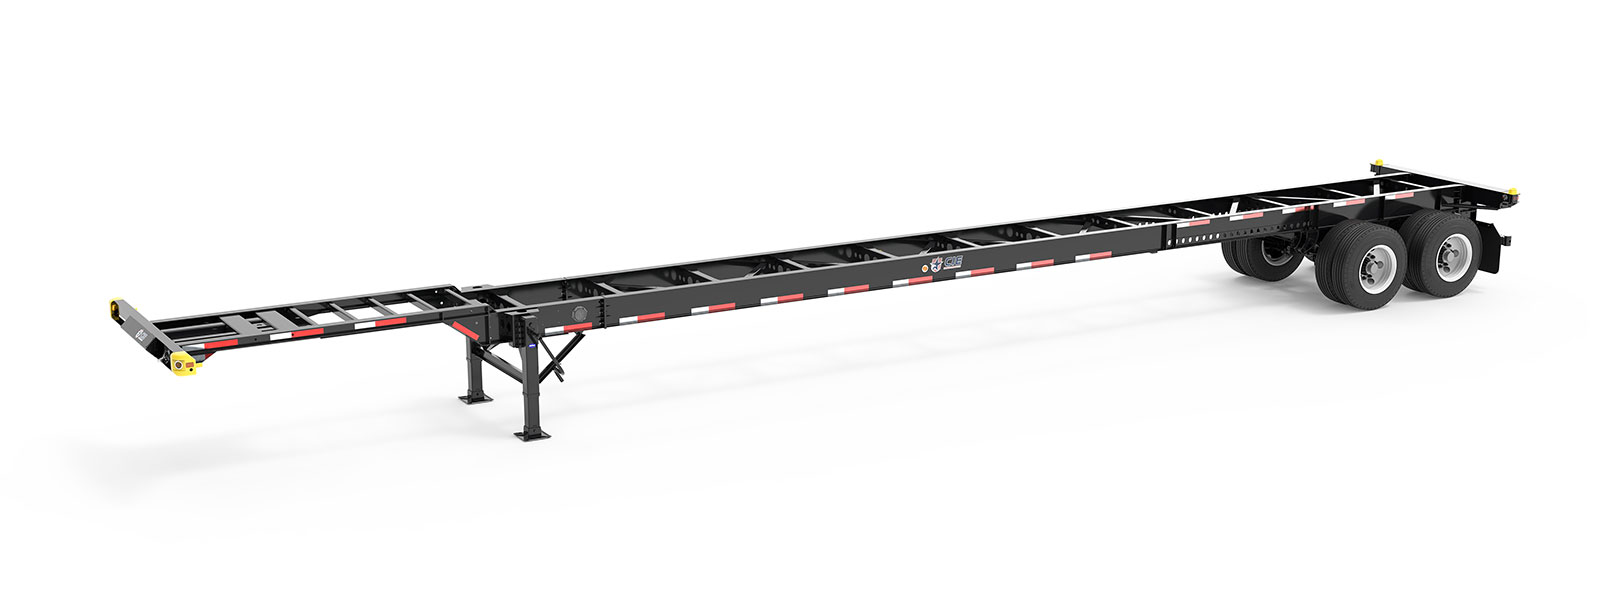 53' Gooseneck Tandem Container Chassis Angle View Final